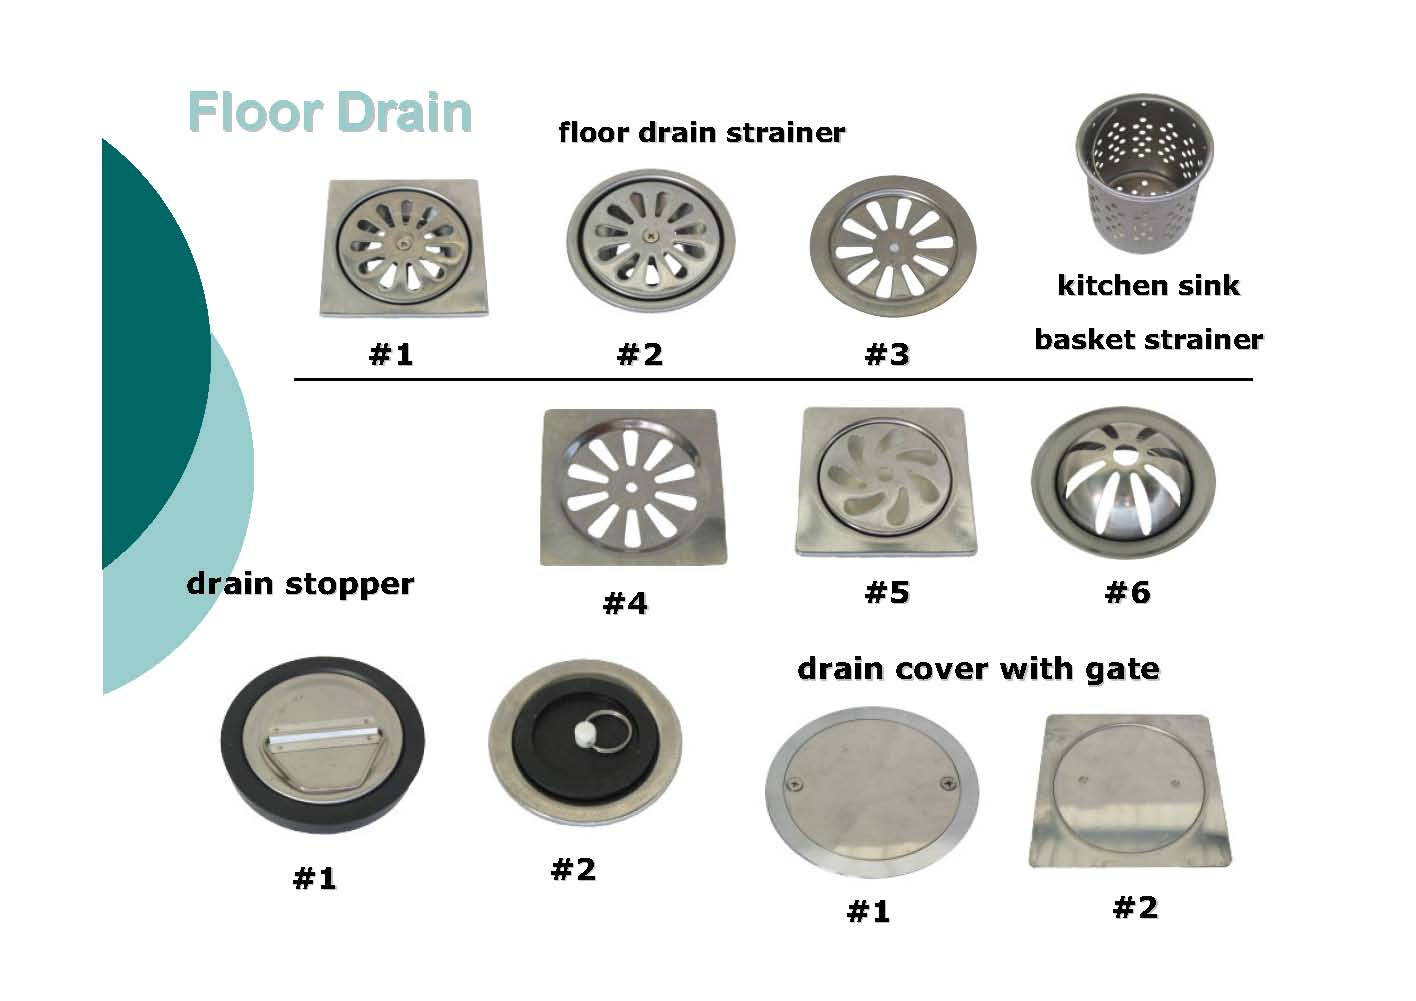 Bathroom Floor Drain Strainer : Floor drain flat strainer bathroom